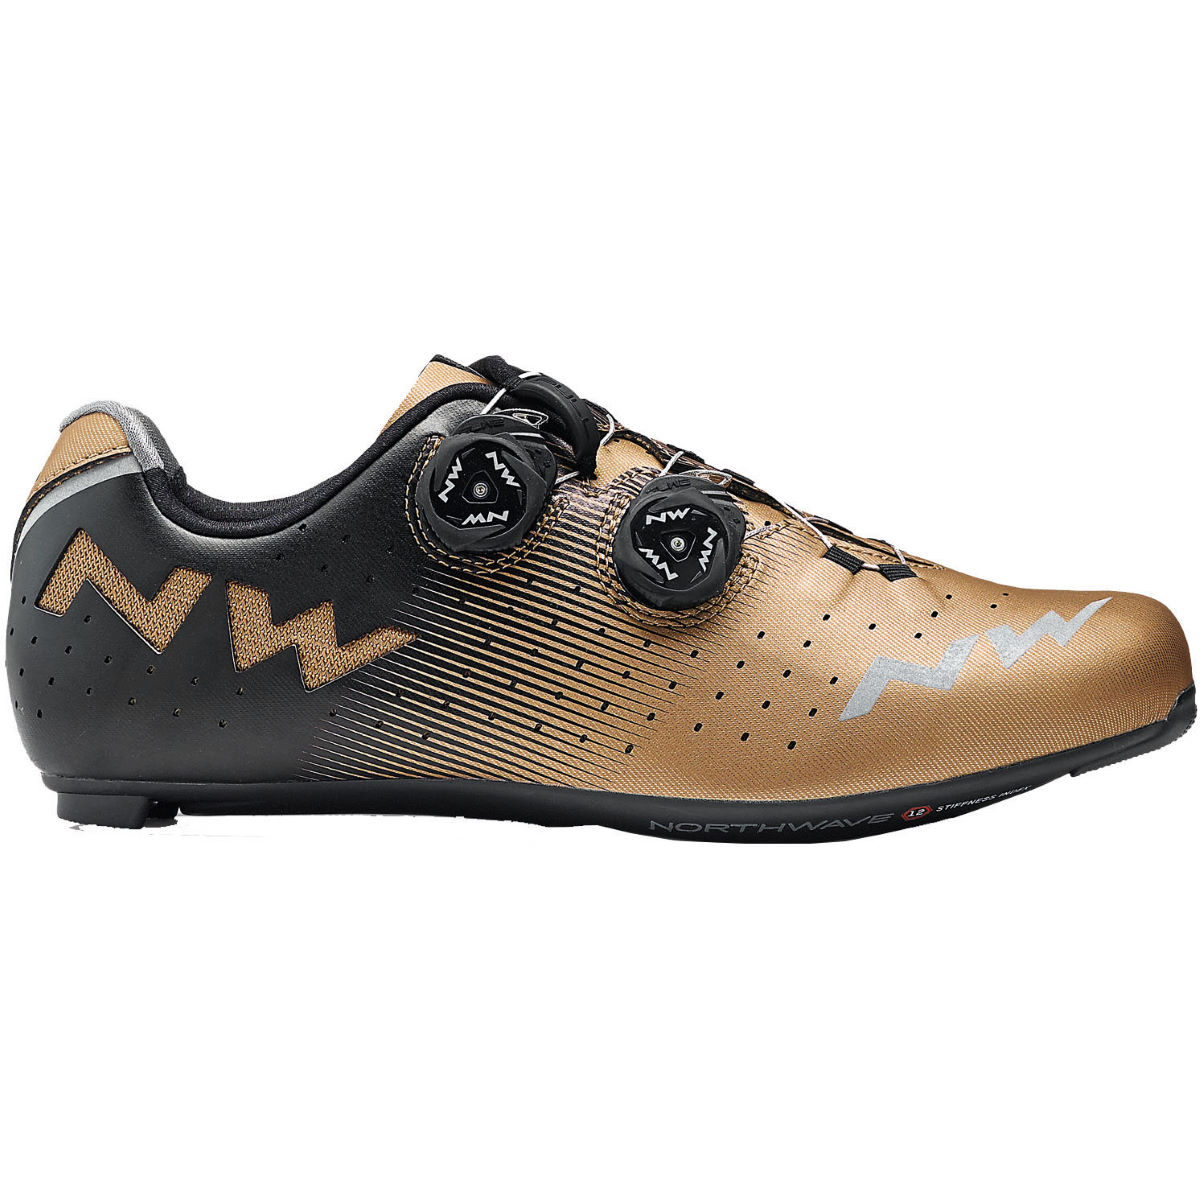 Zapatillas Northwave Revolution - Zapatillas para bicicletas de carretera